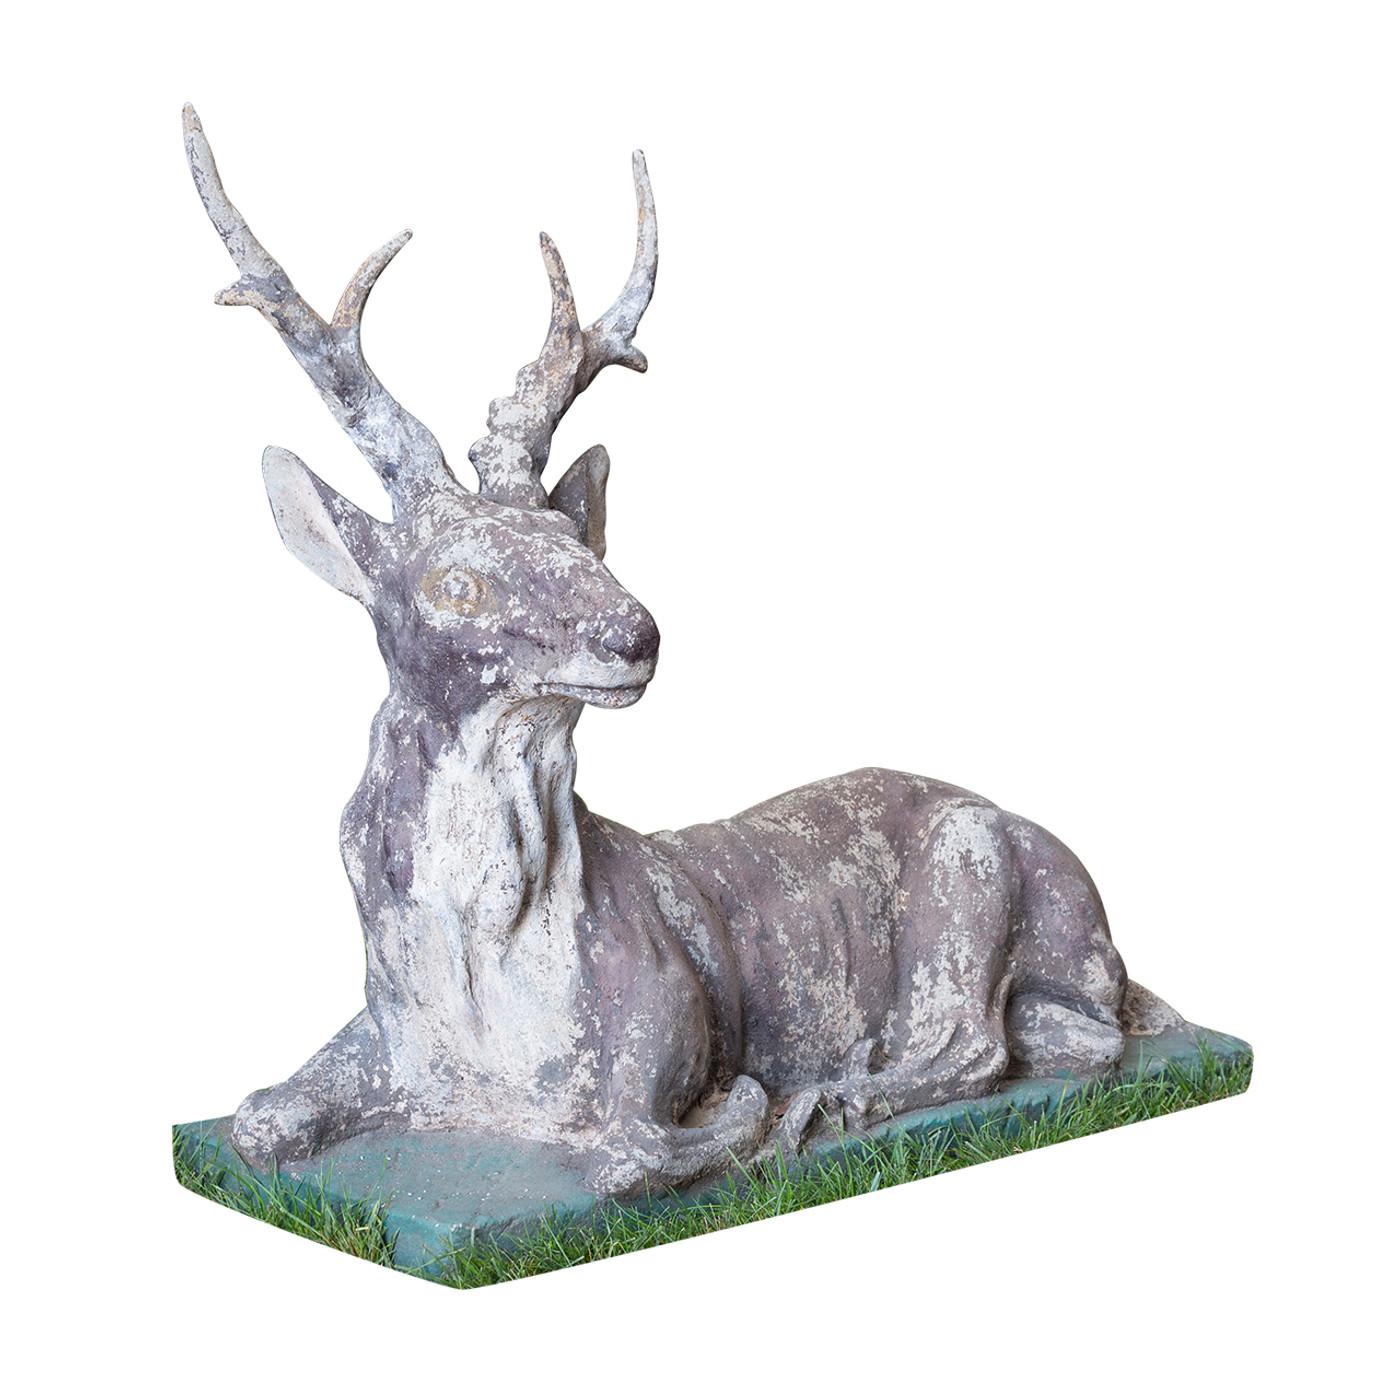 Stone Sculpture of a Stag - French late 19th. C